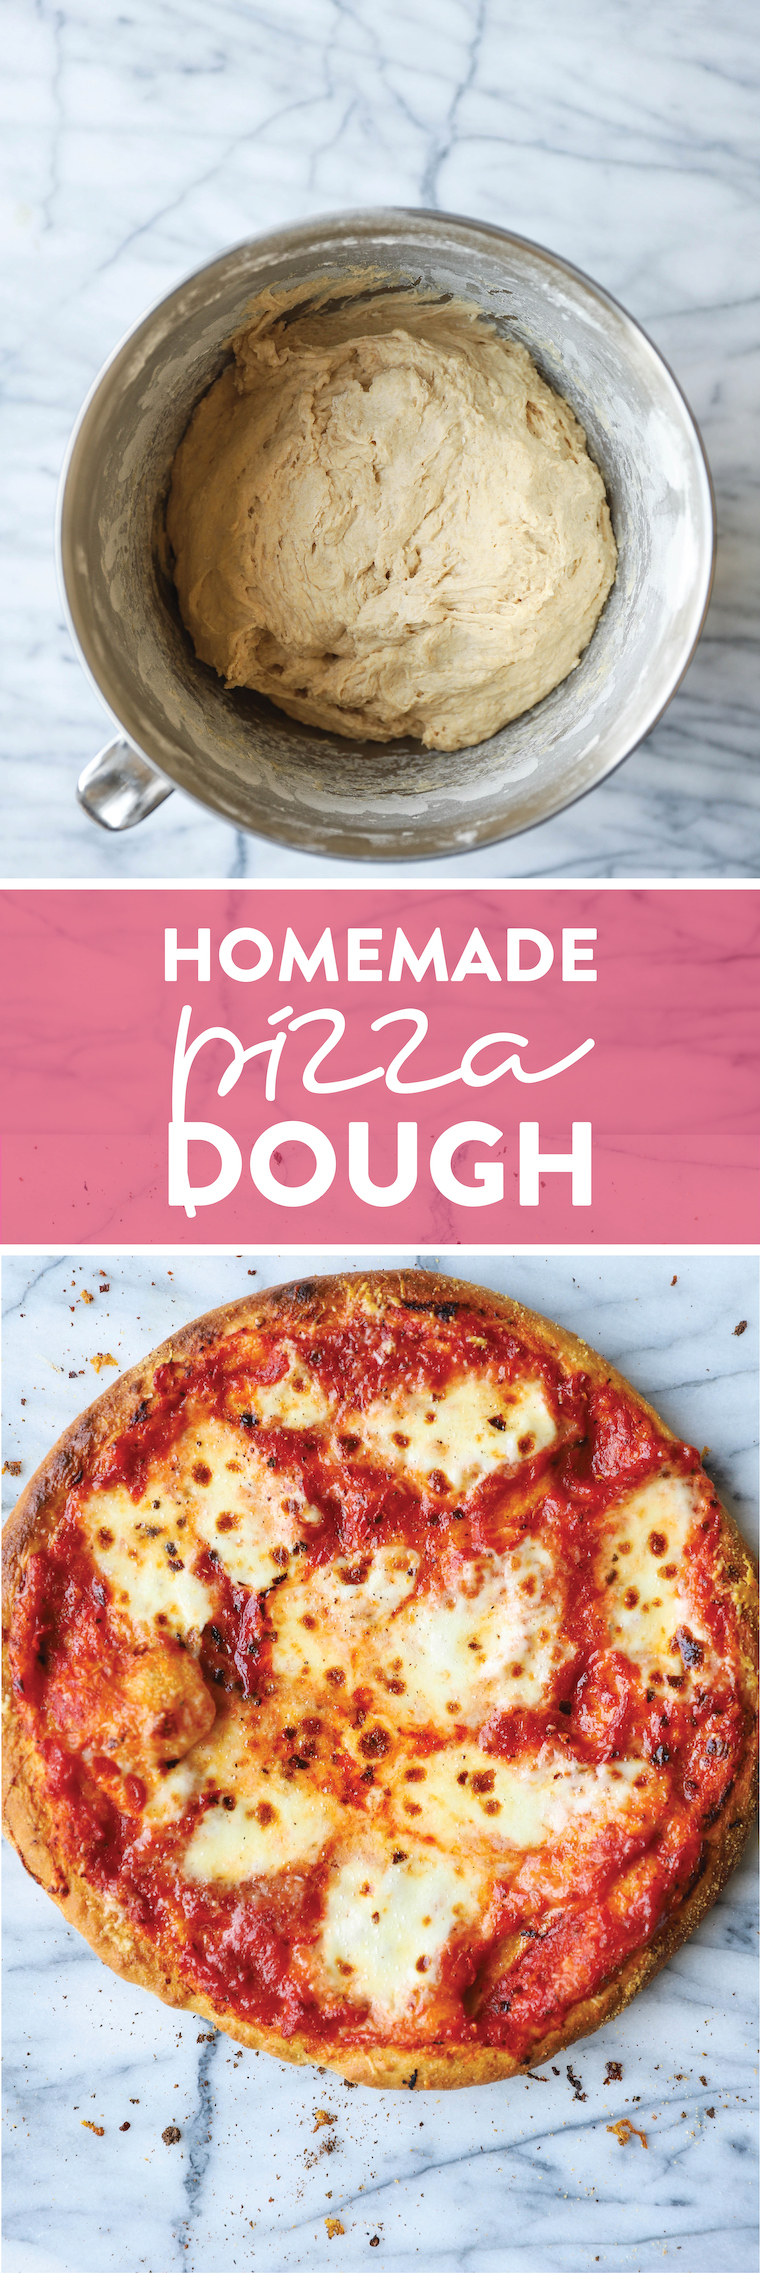 Homemade Pizza Dough - so much easier to make than you think, and it's a game-changer!  Perfect for pizza nights and it's freezer!